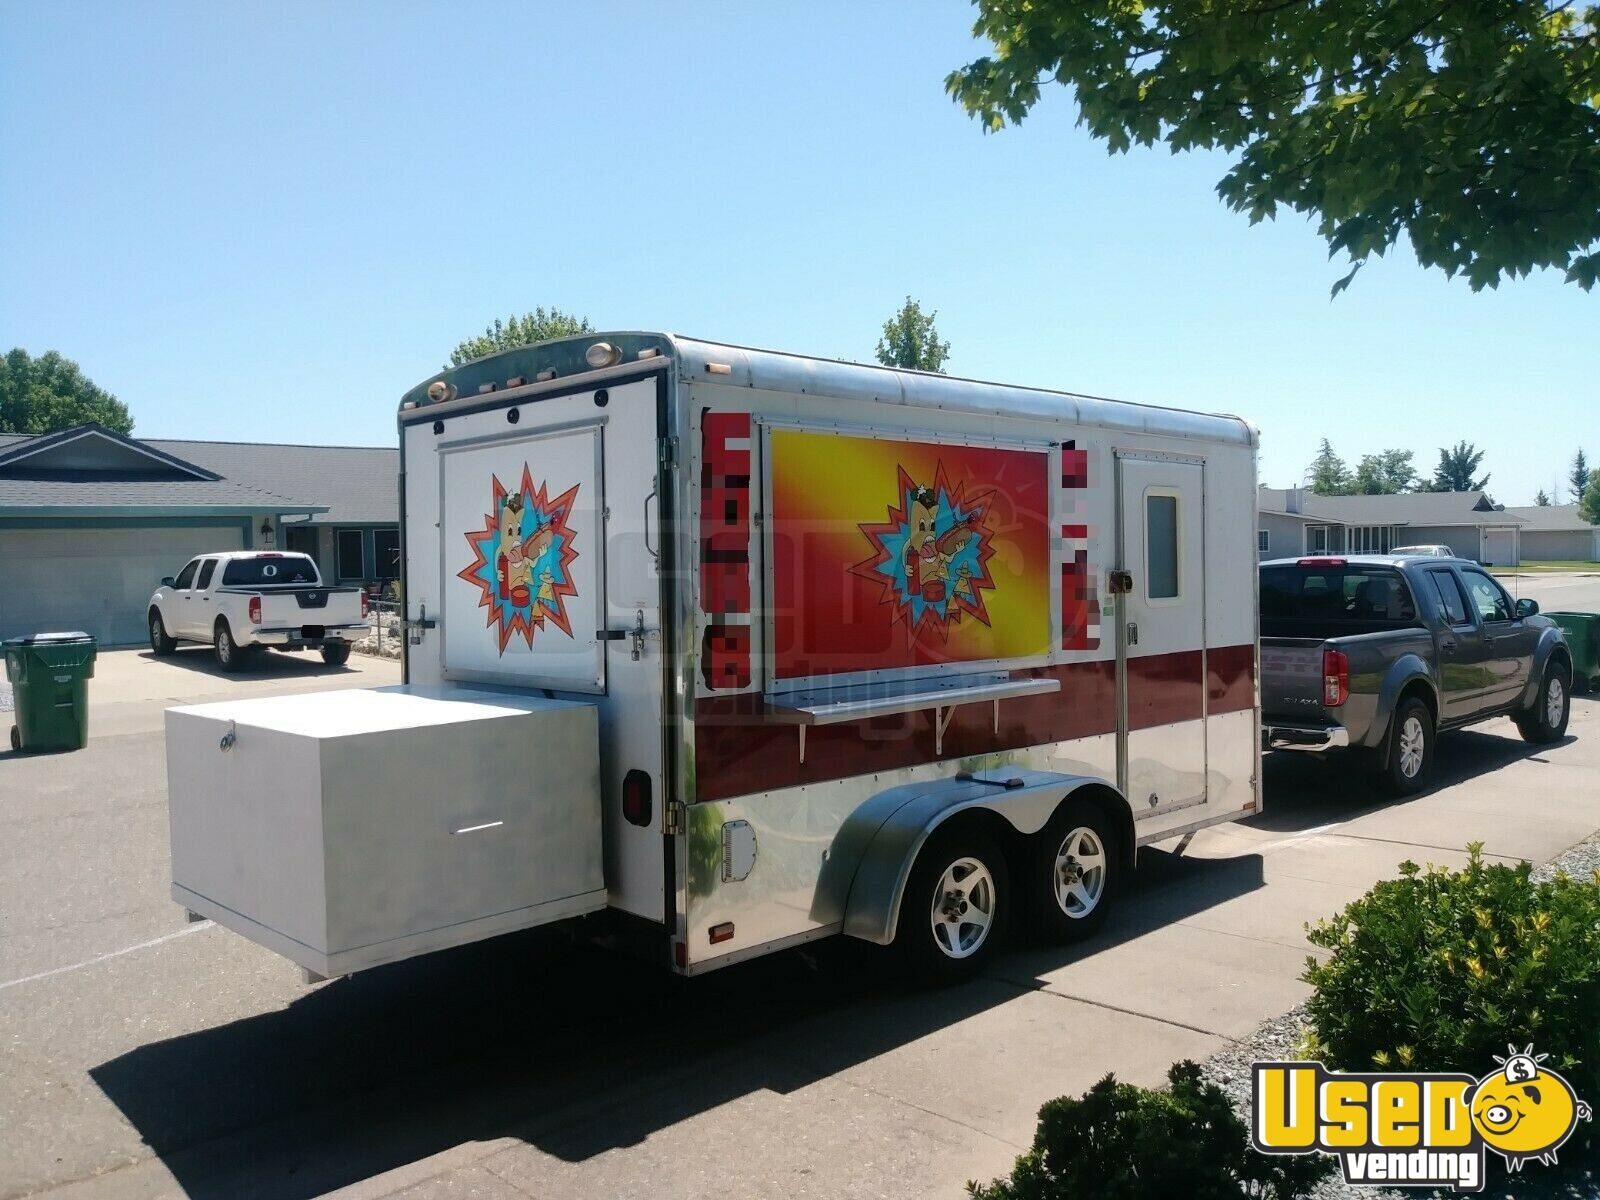 2004 Roadcoach All-purpose Food Trailer Concession Window California for Sale - 3